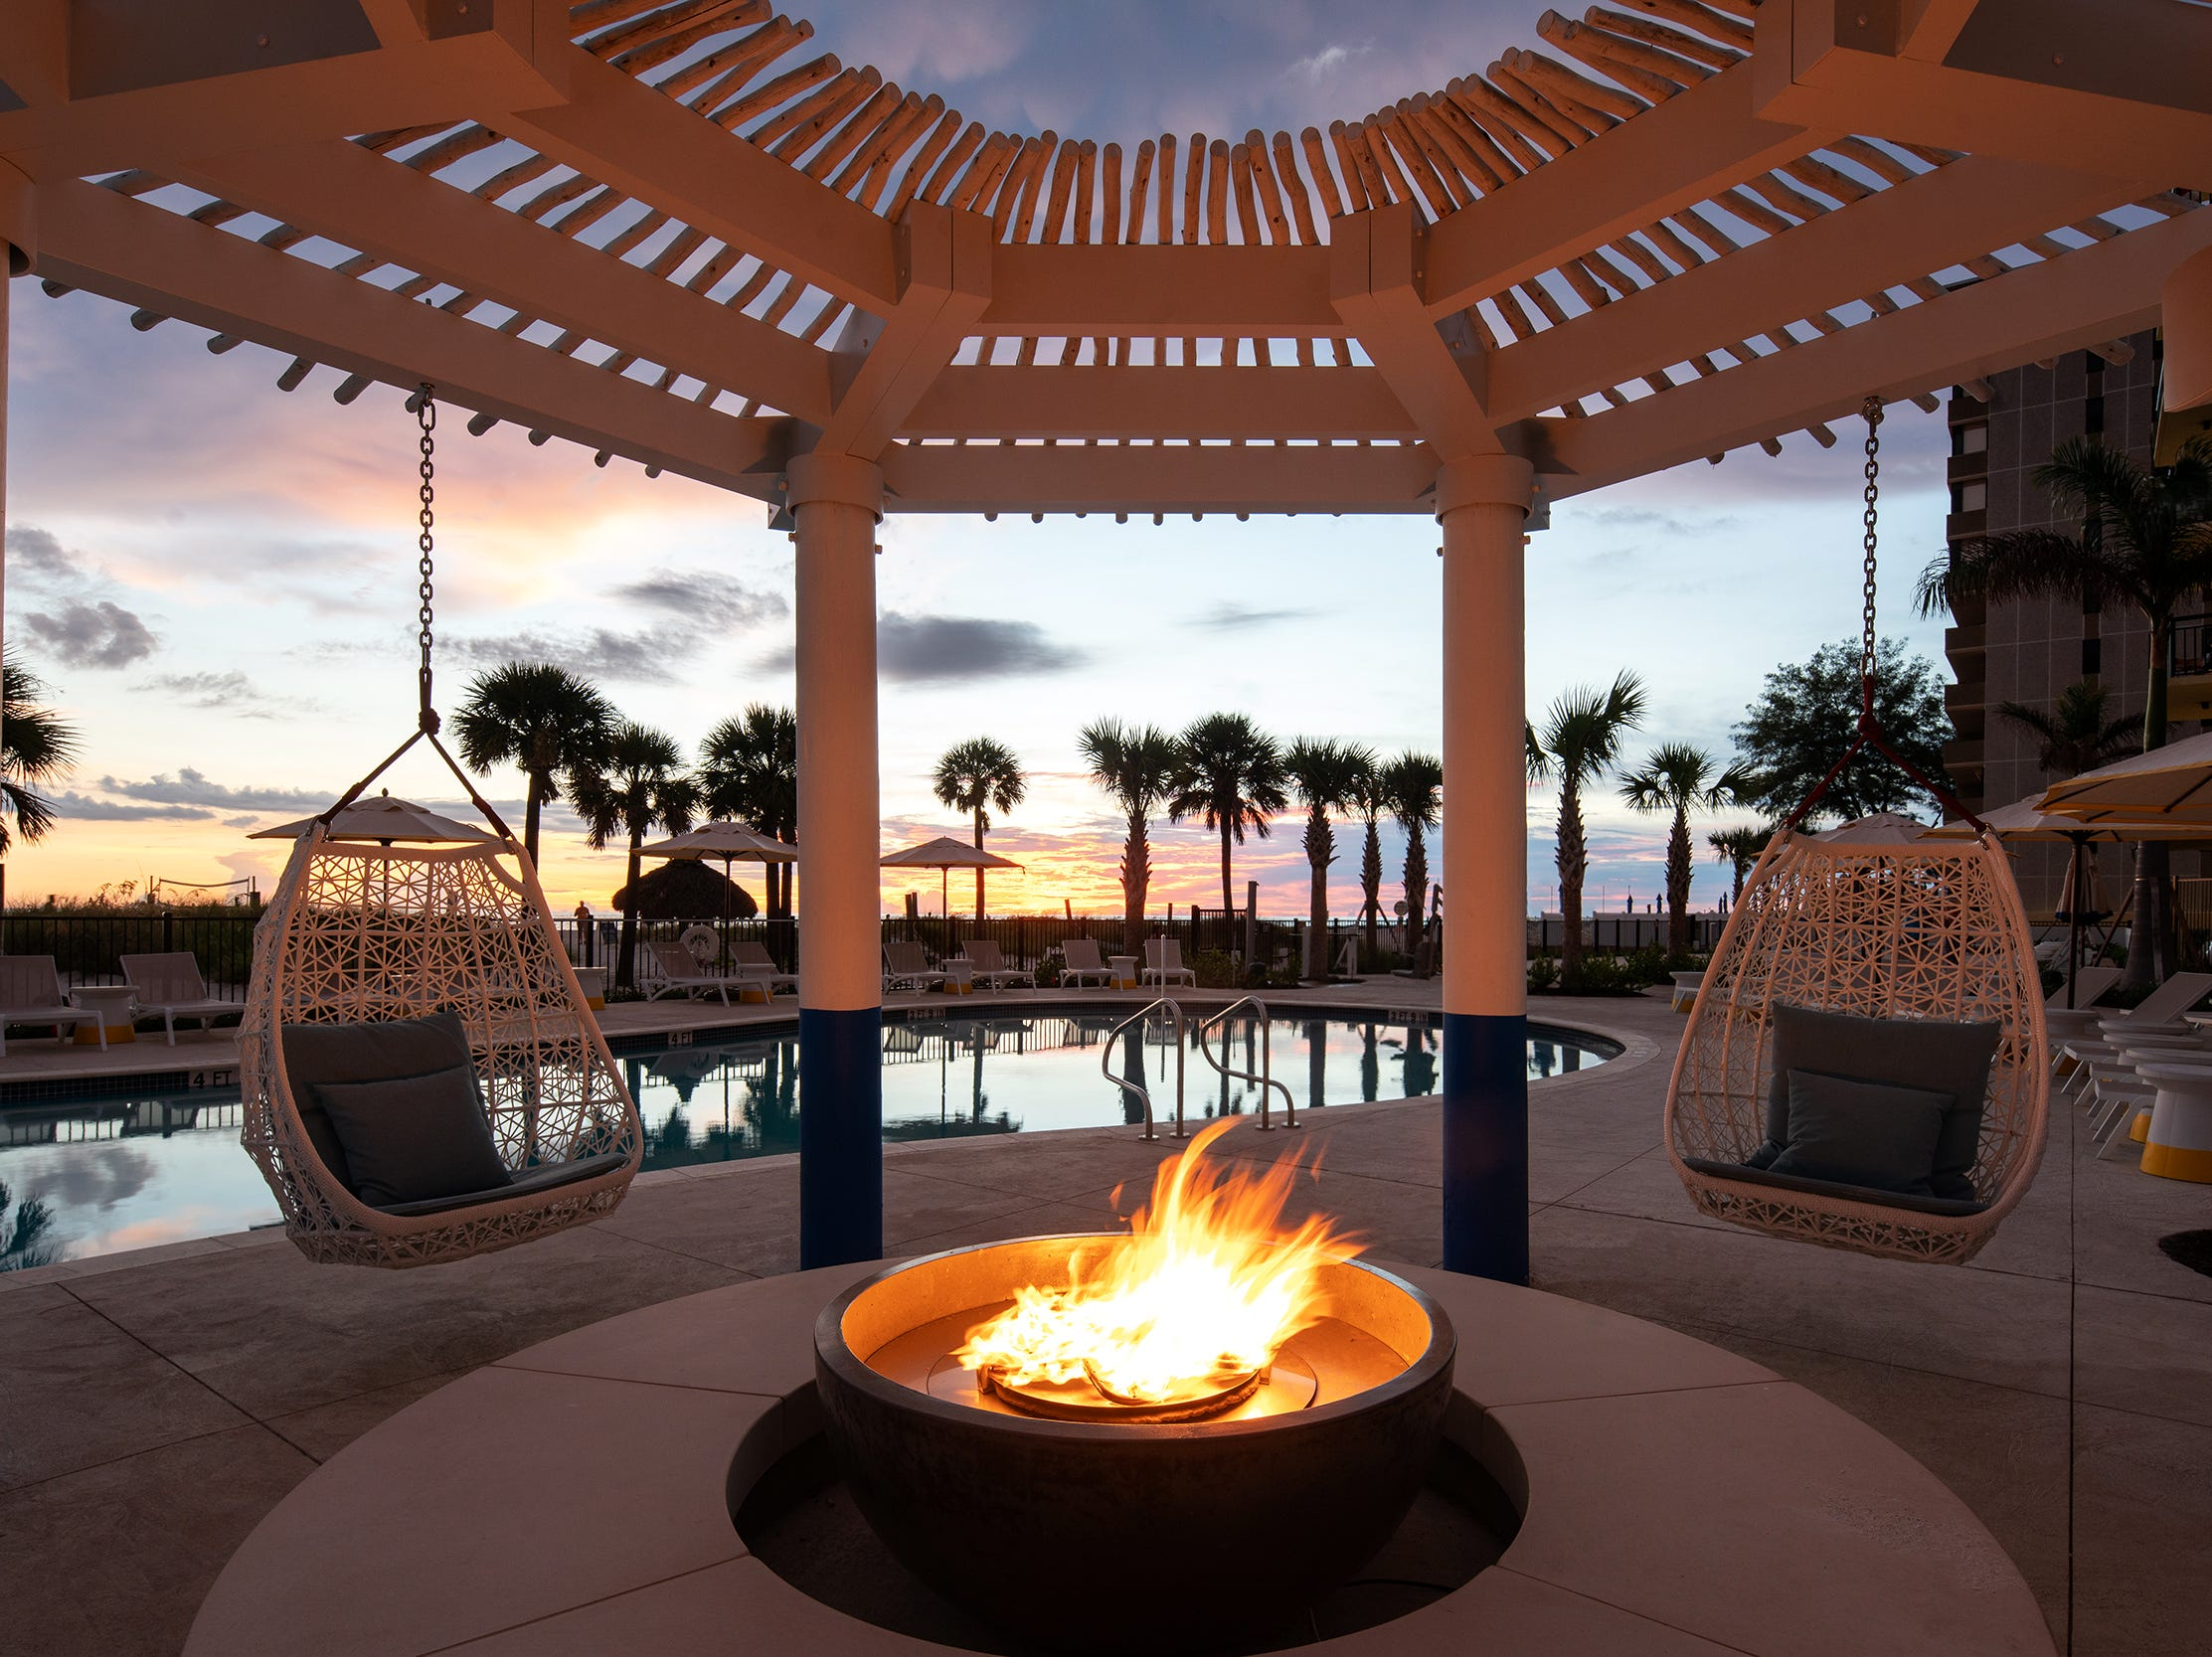 Sirata Beach Resort in St. Pete Beach, Florida, has new fire pits by the north pool.